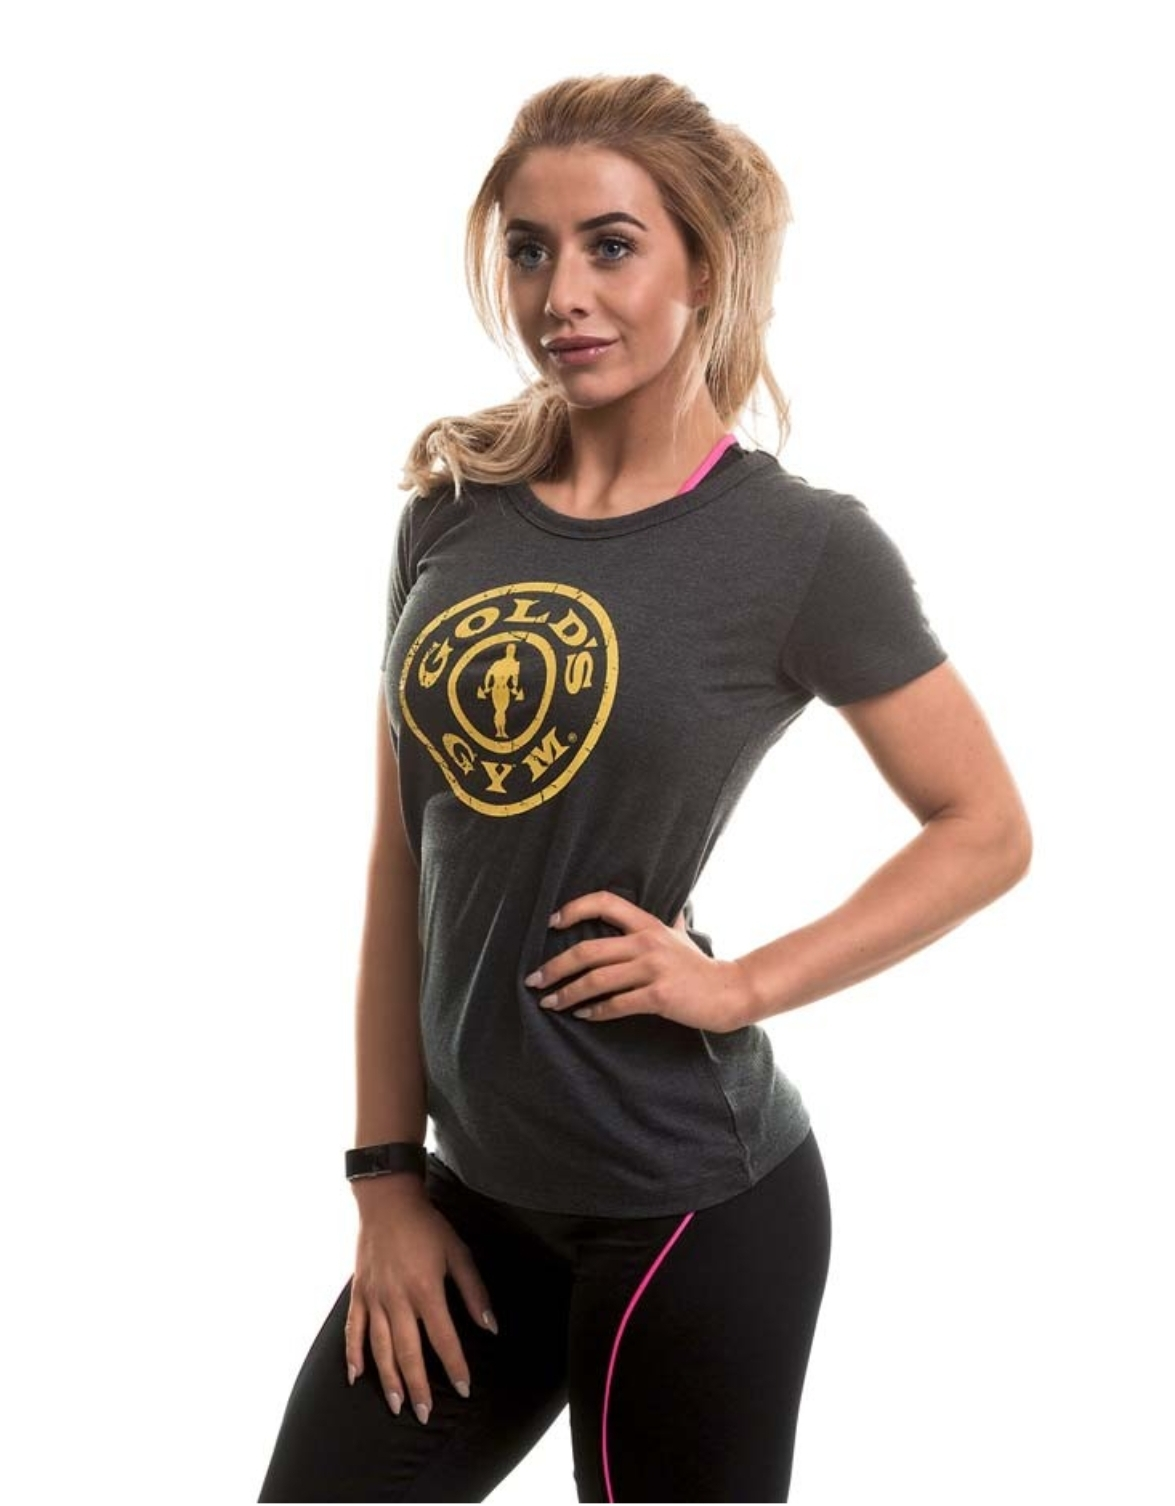 Golds Gym Muscle Joe Ladies Fitted Premium T-Shirt Sport Femme